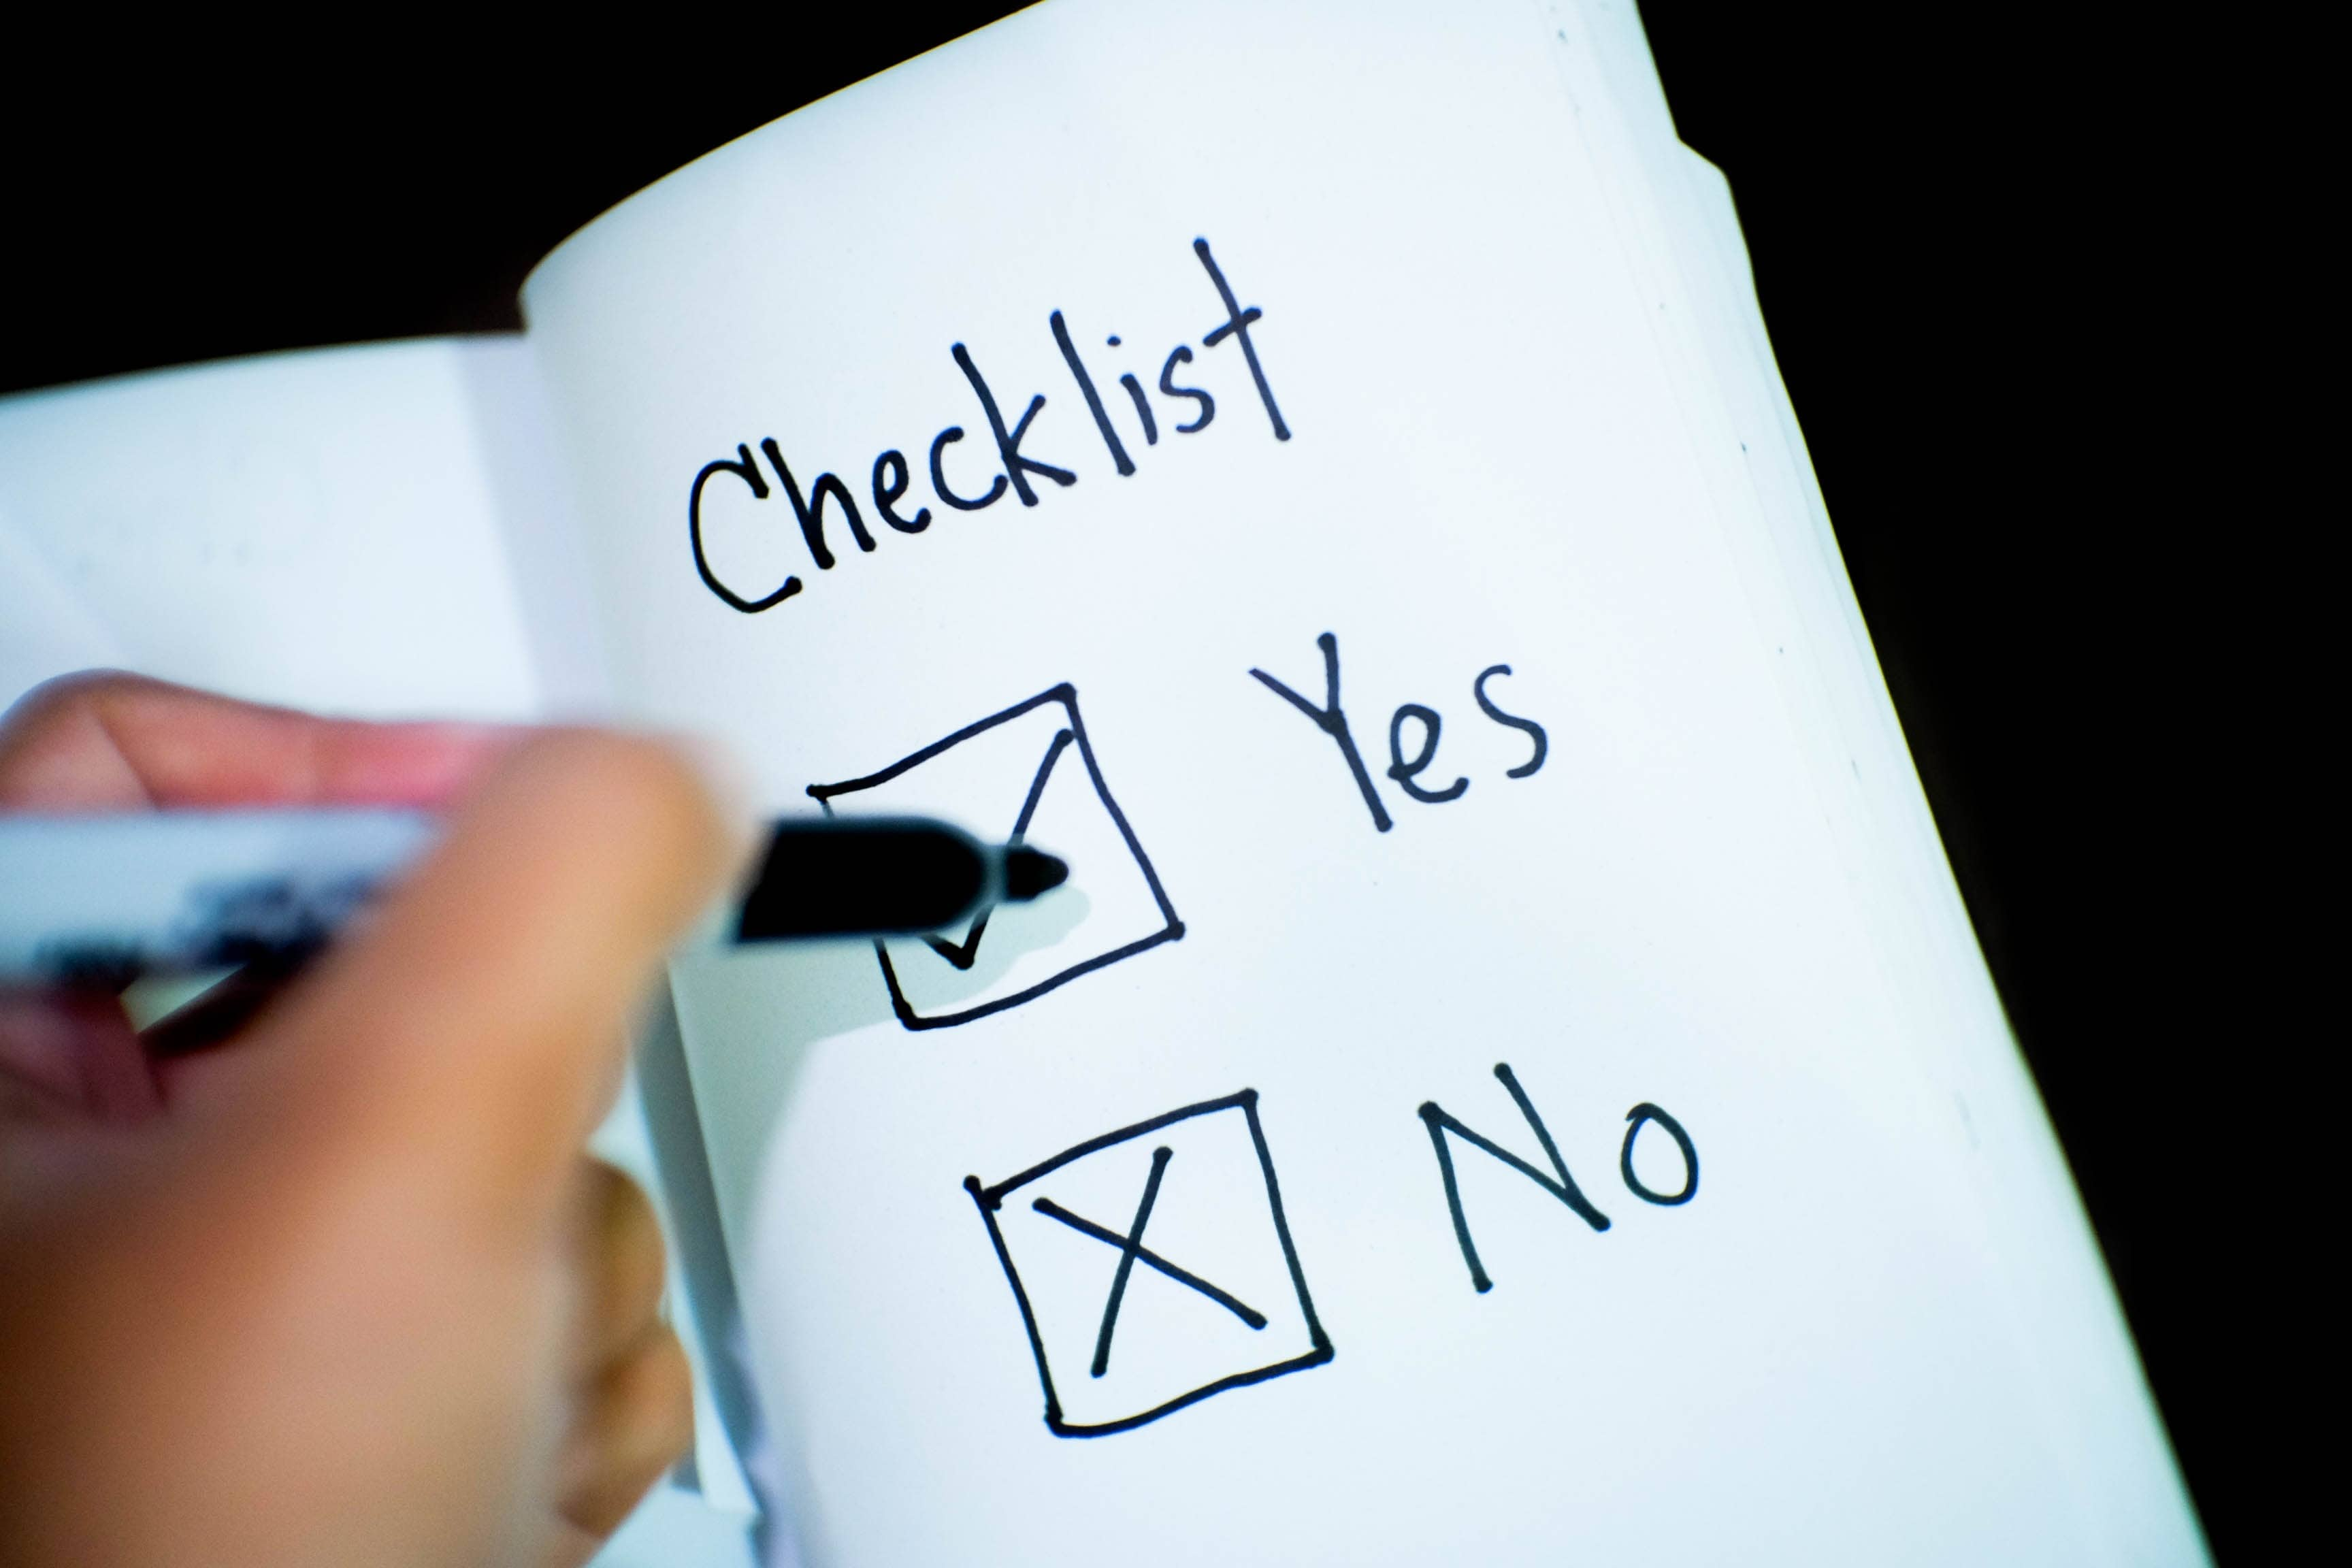 Person With Pen Writing Checklist